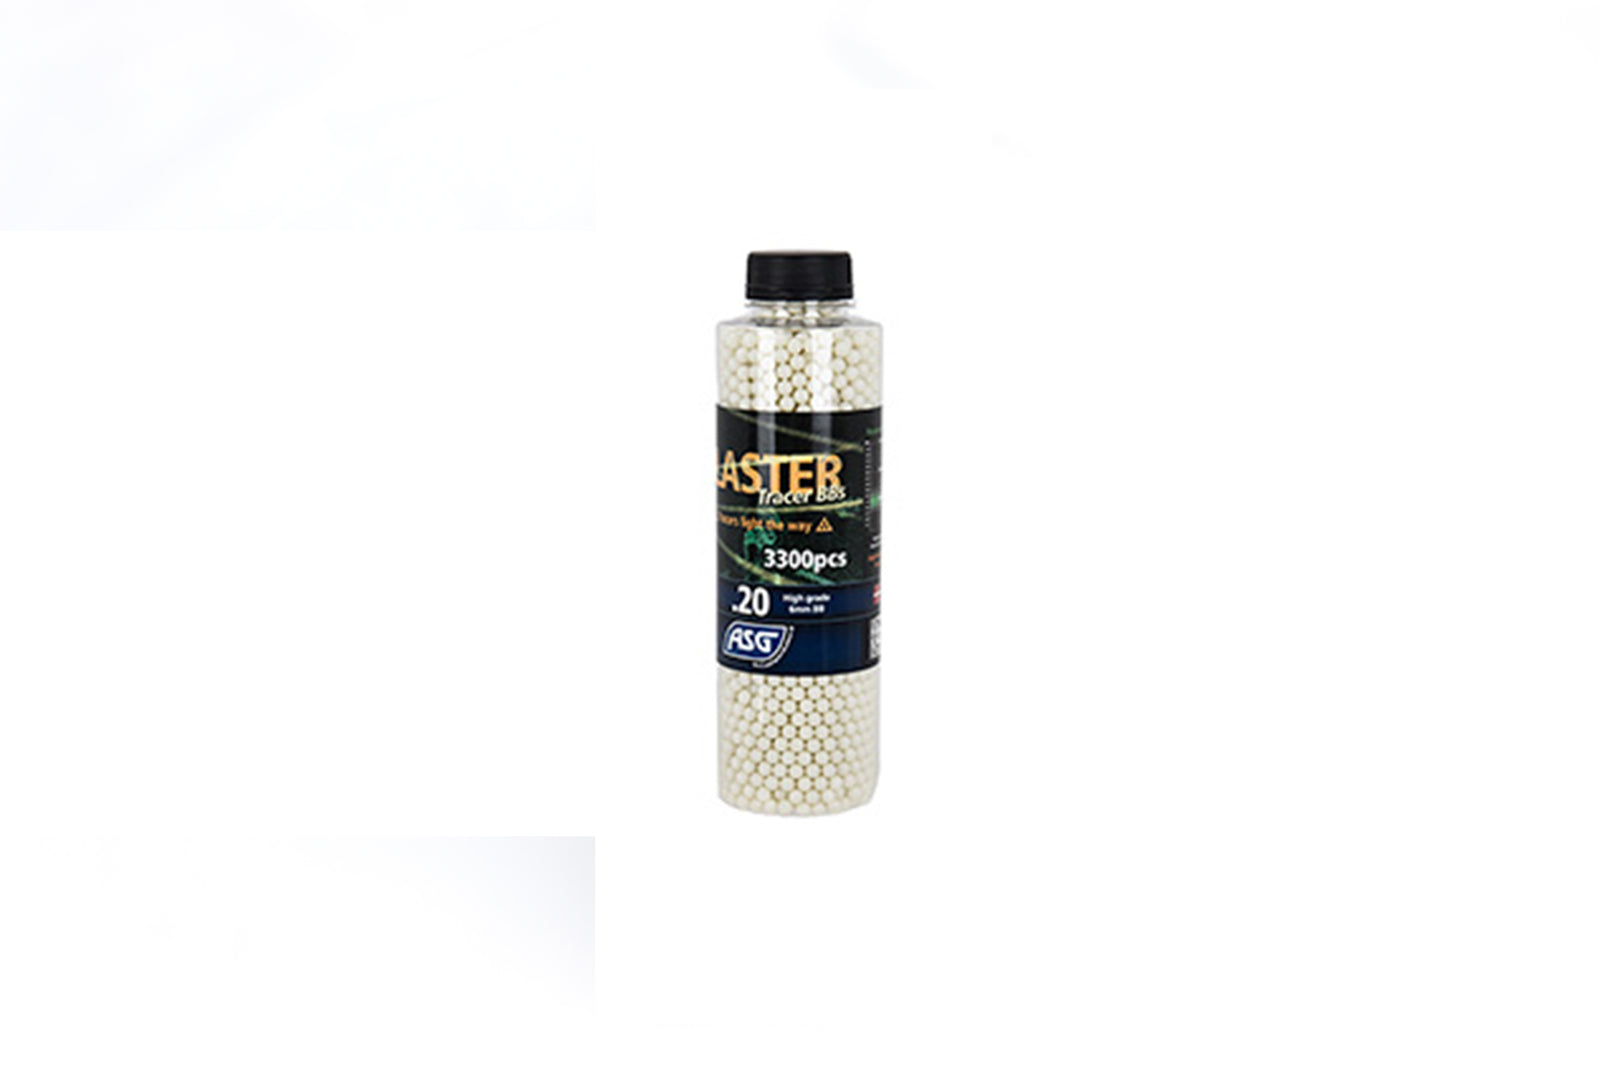 ASG Blaster Tracer Airsoft BBs Bottle [3,300 Rounds]